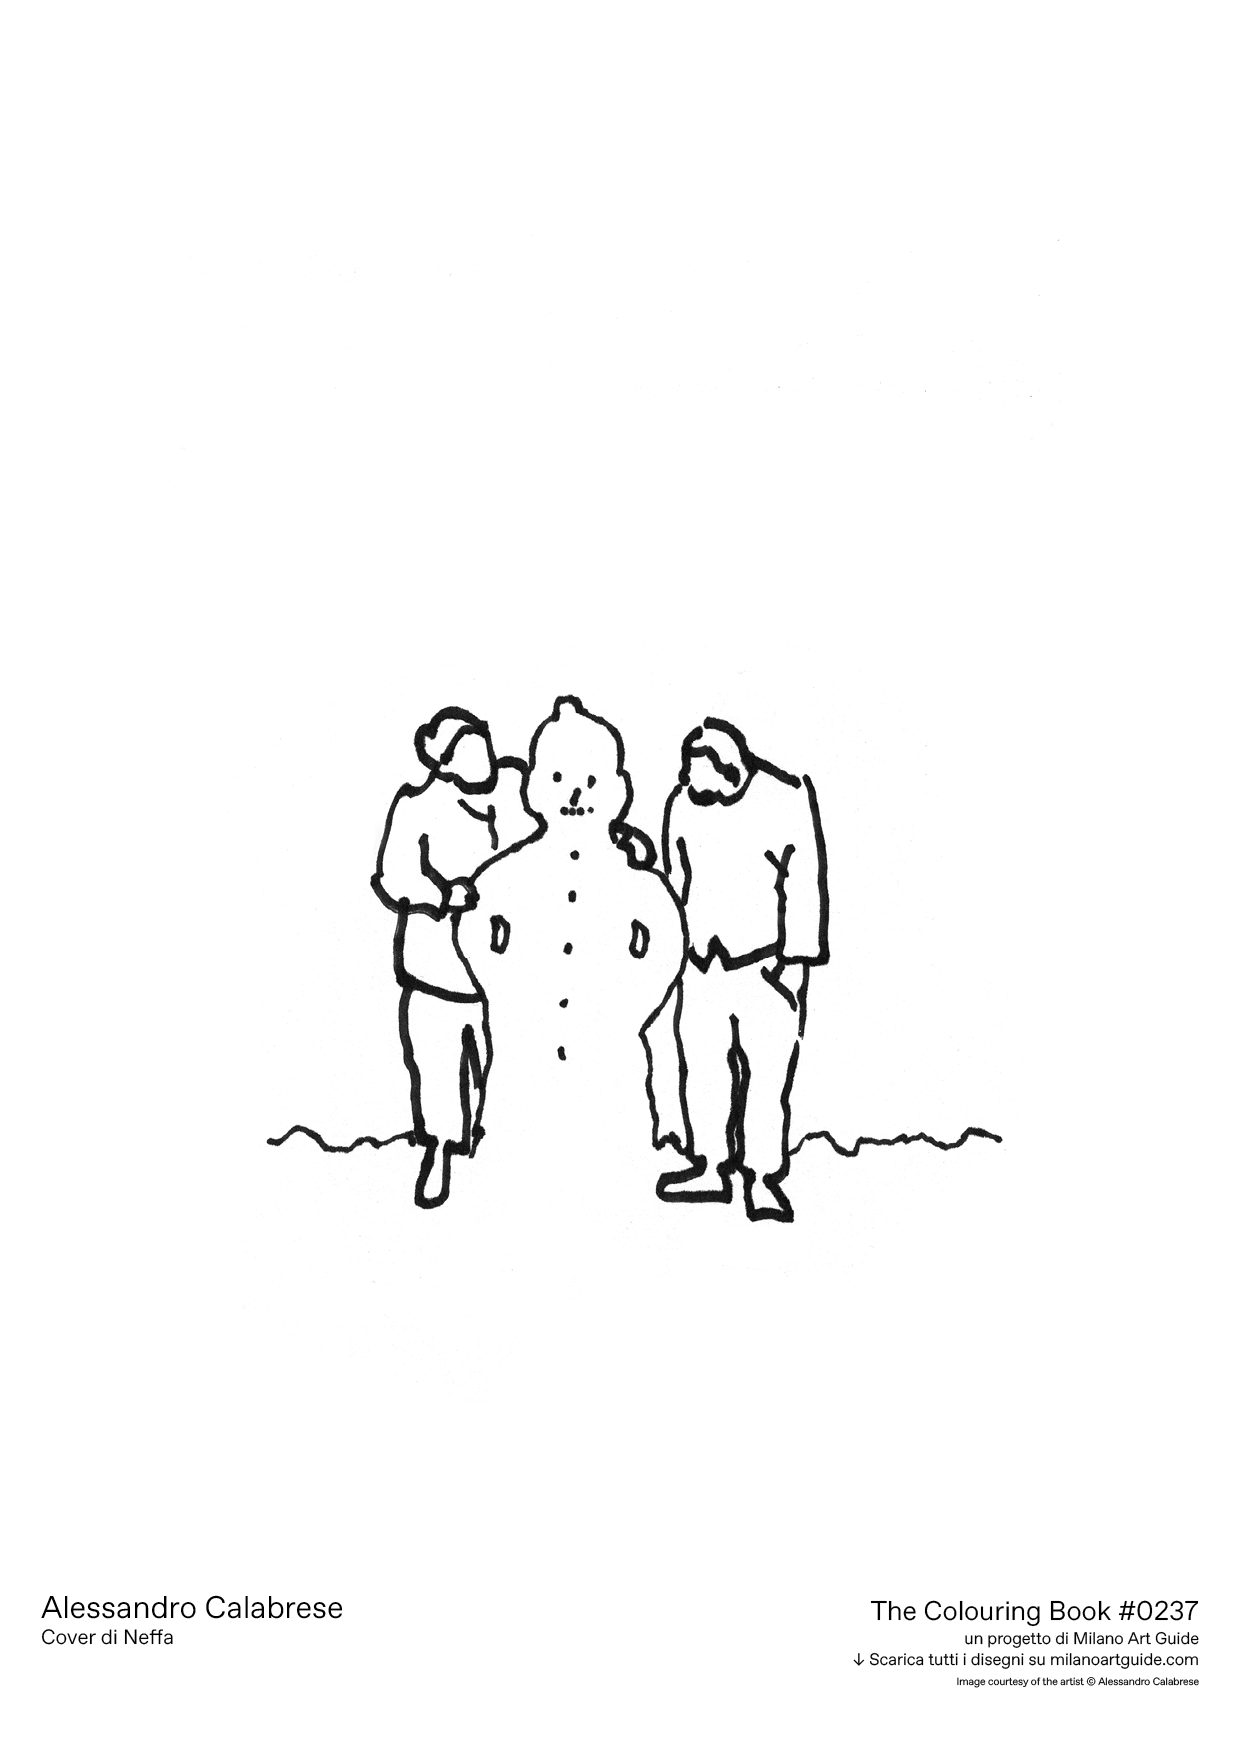 236_TanyaPosternak_THECOLOURINGBOOK_MILANOARTGUIDE.png